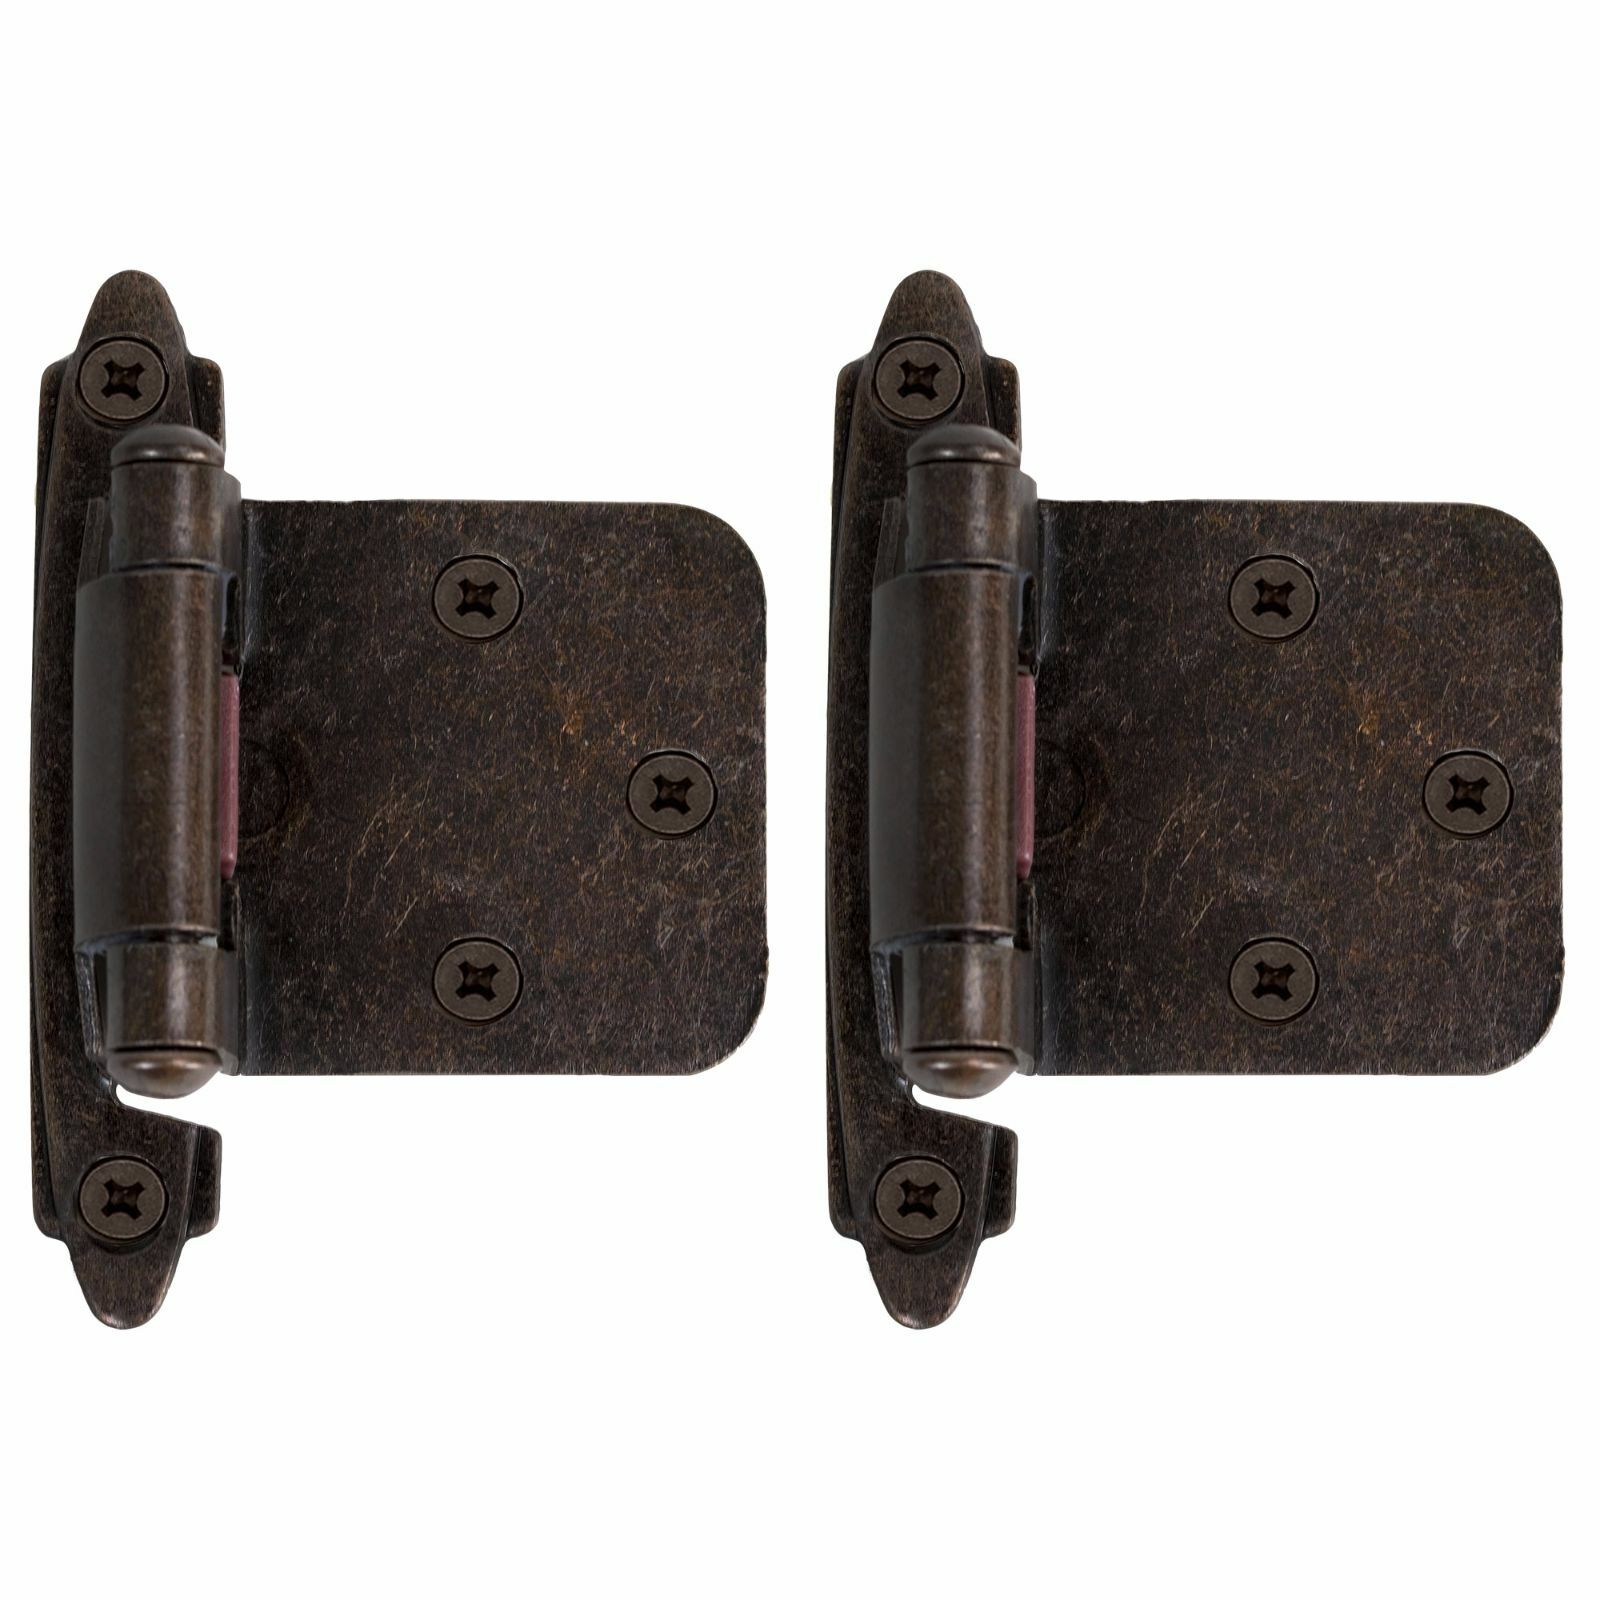 Kitchen Cabinet Hinges Self Closing Door Overlay Oil Rubbed Bronze Hardware  5 Pair Pack | EBay